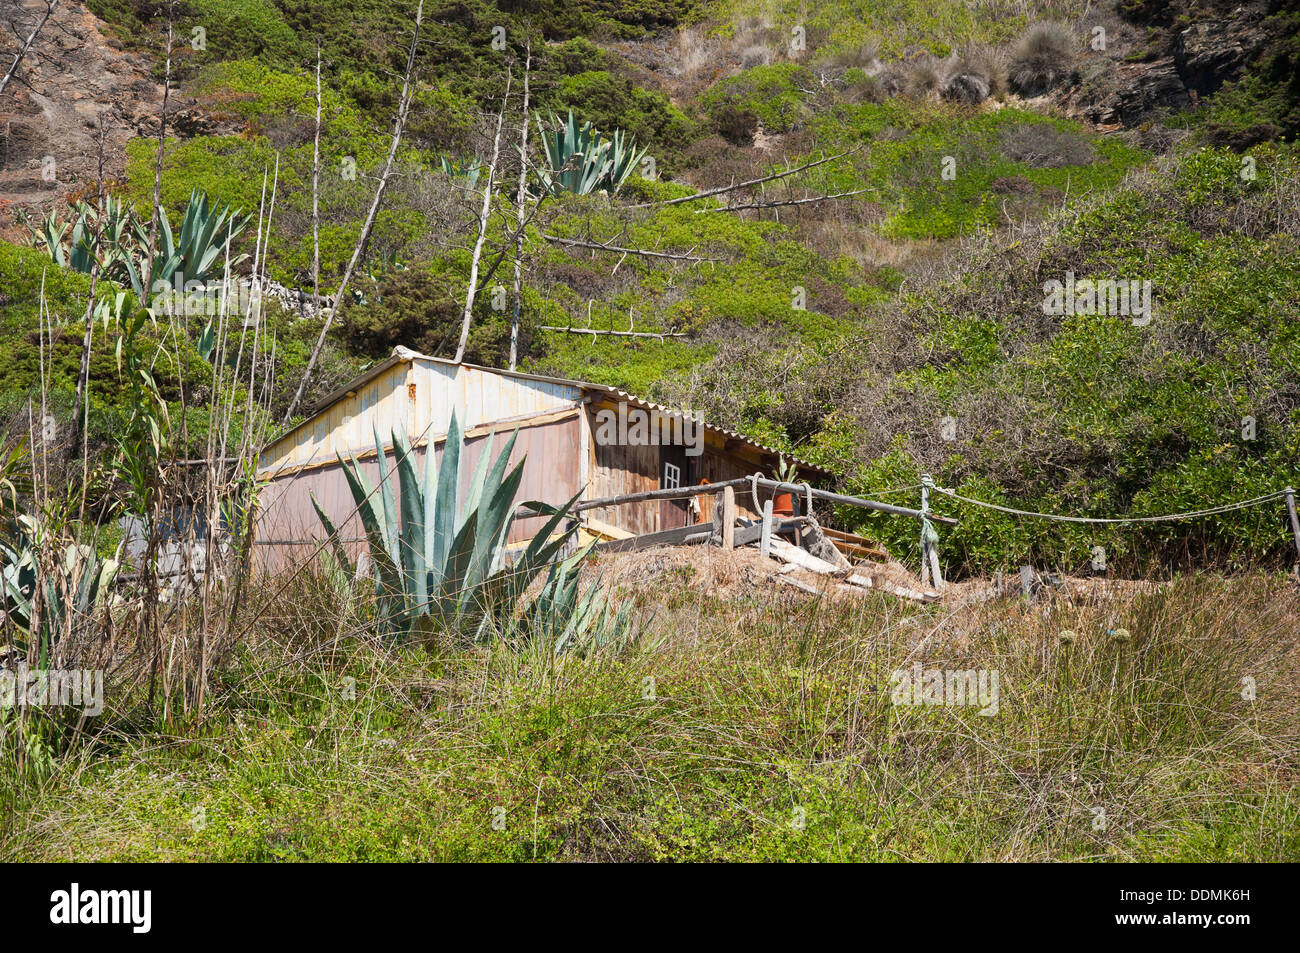 House in the middle of the scarp - Stock Image